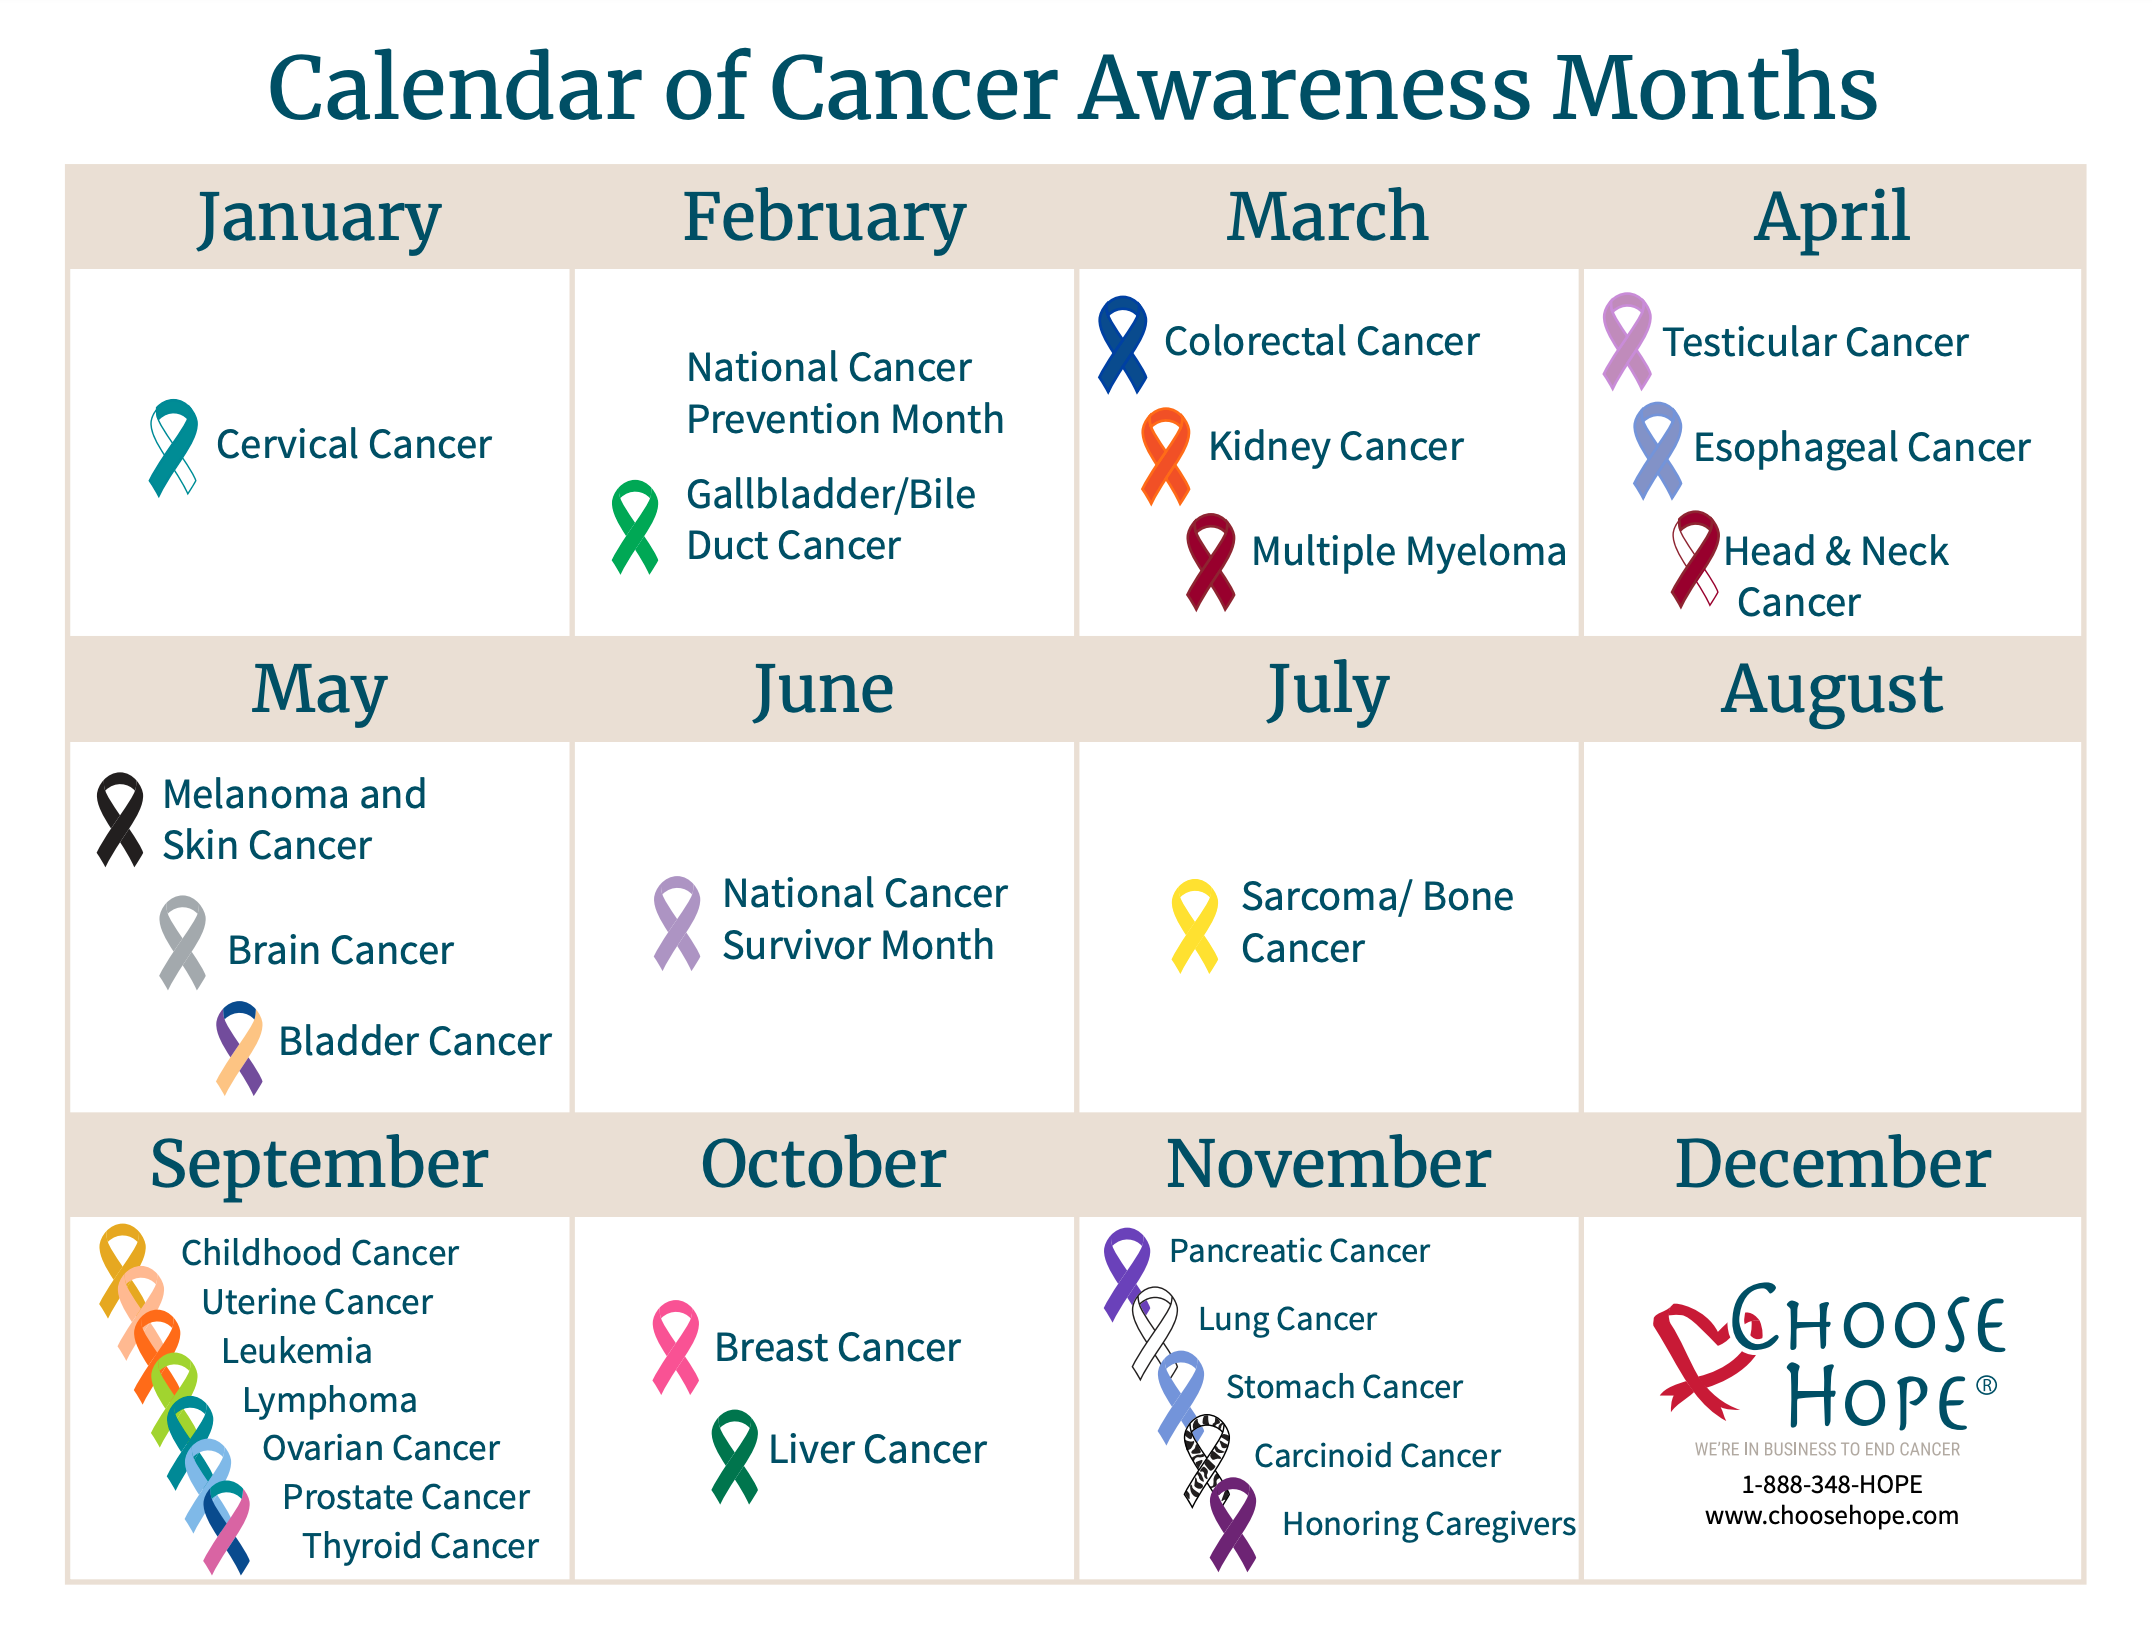 Cancer Awareness Months Calendar And Ribbon Colors Choose Hope